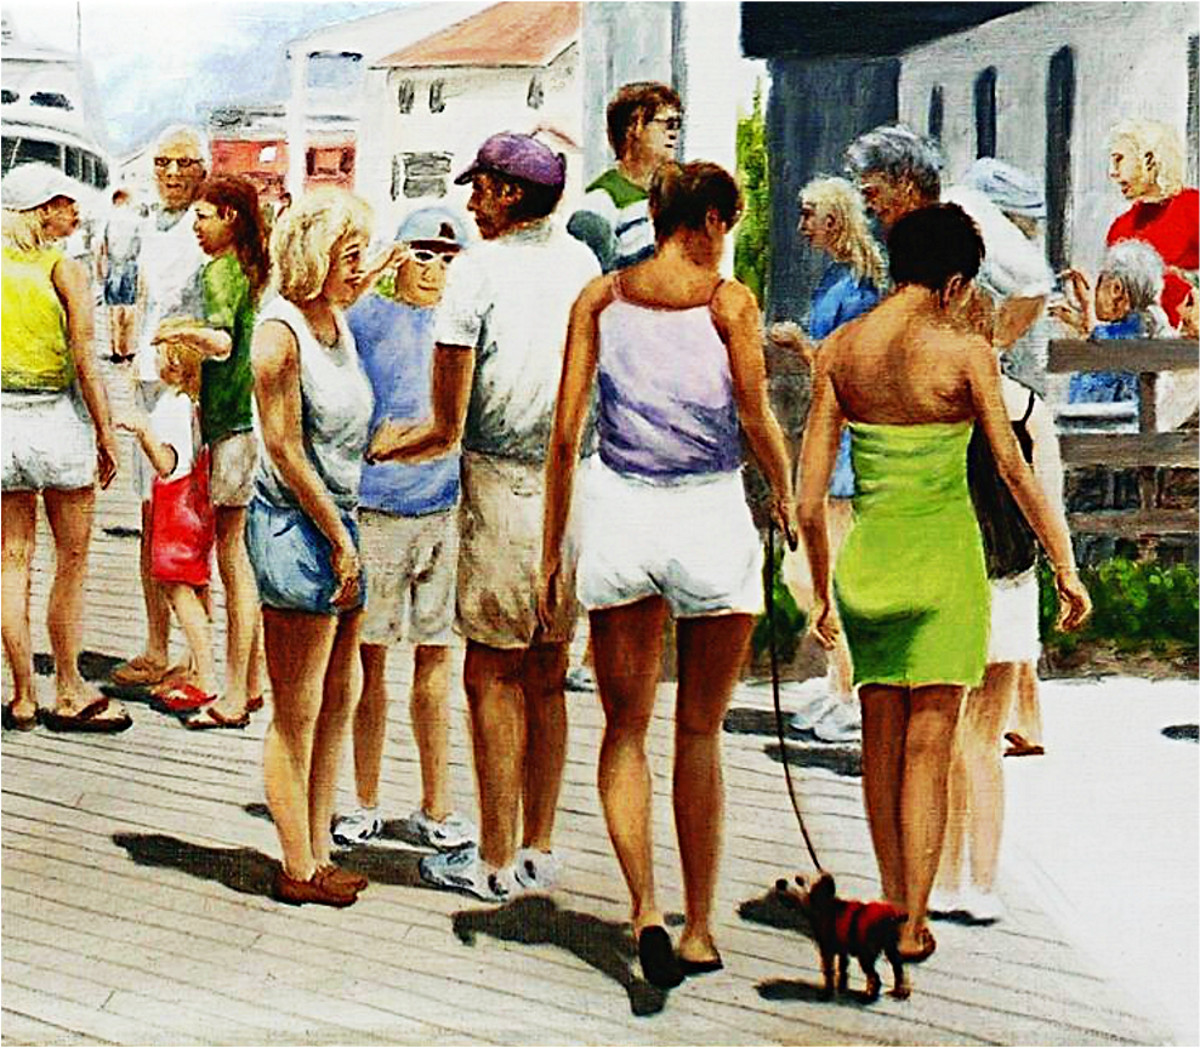 Beach/shore II Boardwalk Beaufort Dock (detail). Fine Art Painting, original oil on linen, 24' x 50', $2000, $18 to $24, medium-size prints. I used to come here during times when I visited my daughter on Emerald Isle... Free downloads, wallpaper, ‬‎GrlFineArt. Fine art work. For fine art decor, ‪‎fineart beach, shore...